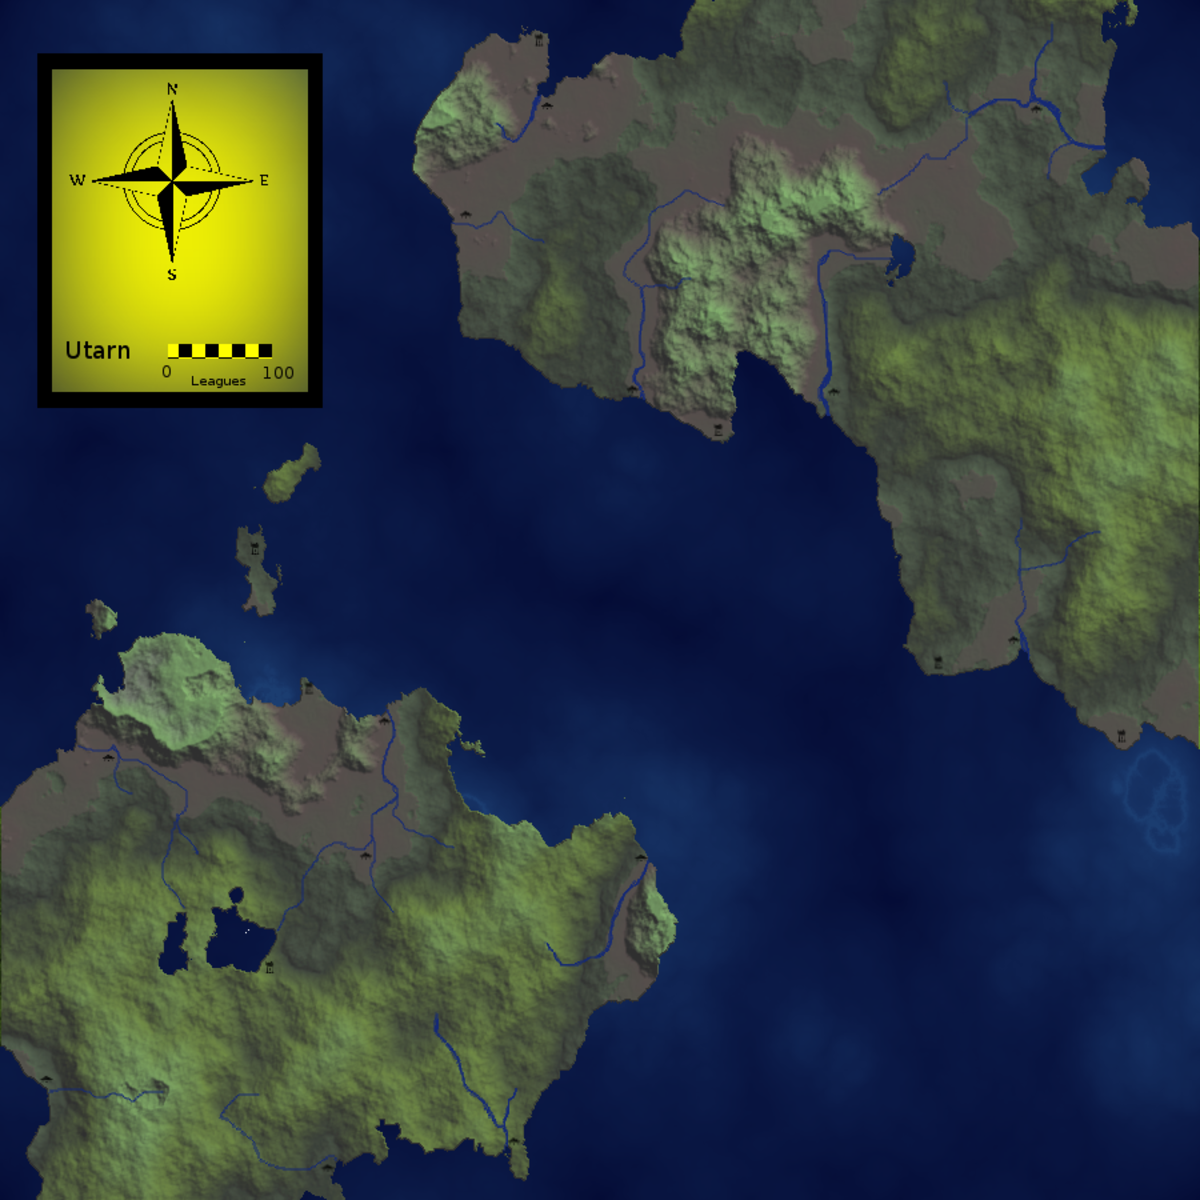 Creating Fantasy Maps for D&D with GIMP 2.8 (2.10.12)